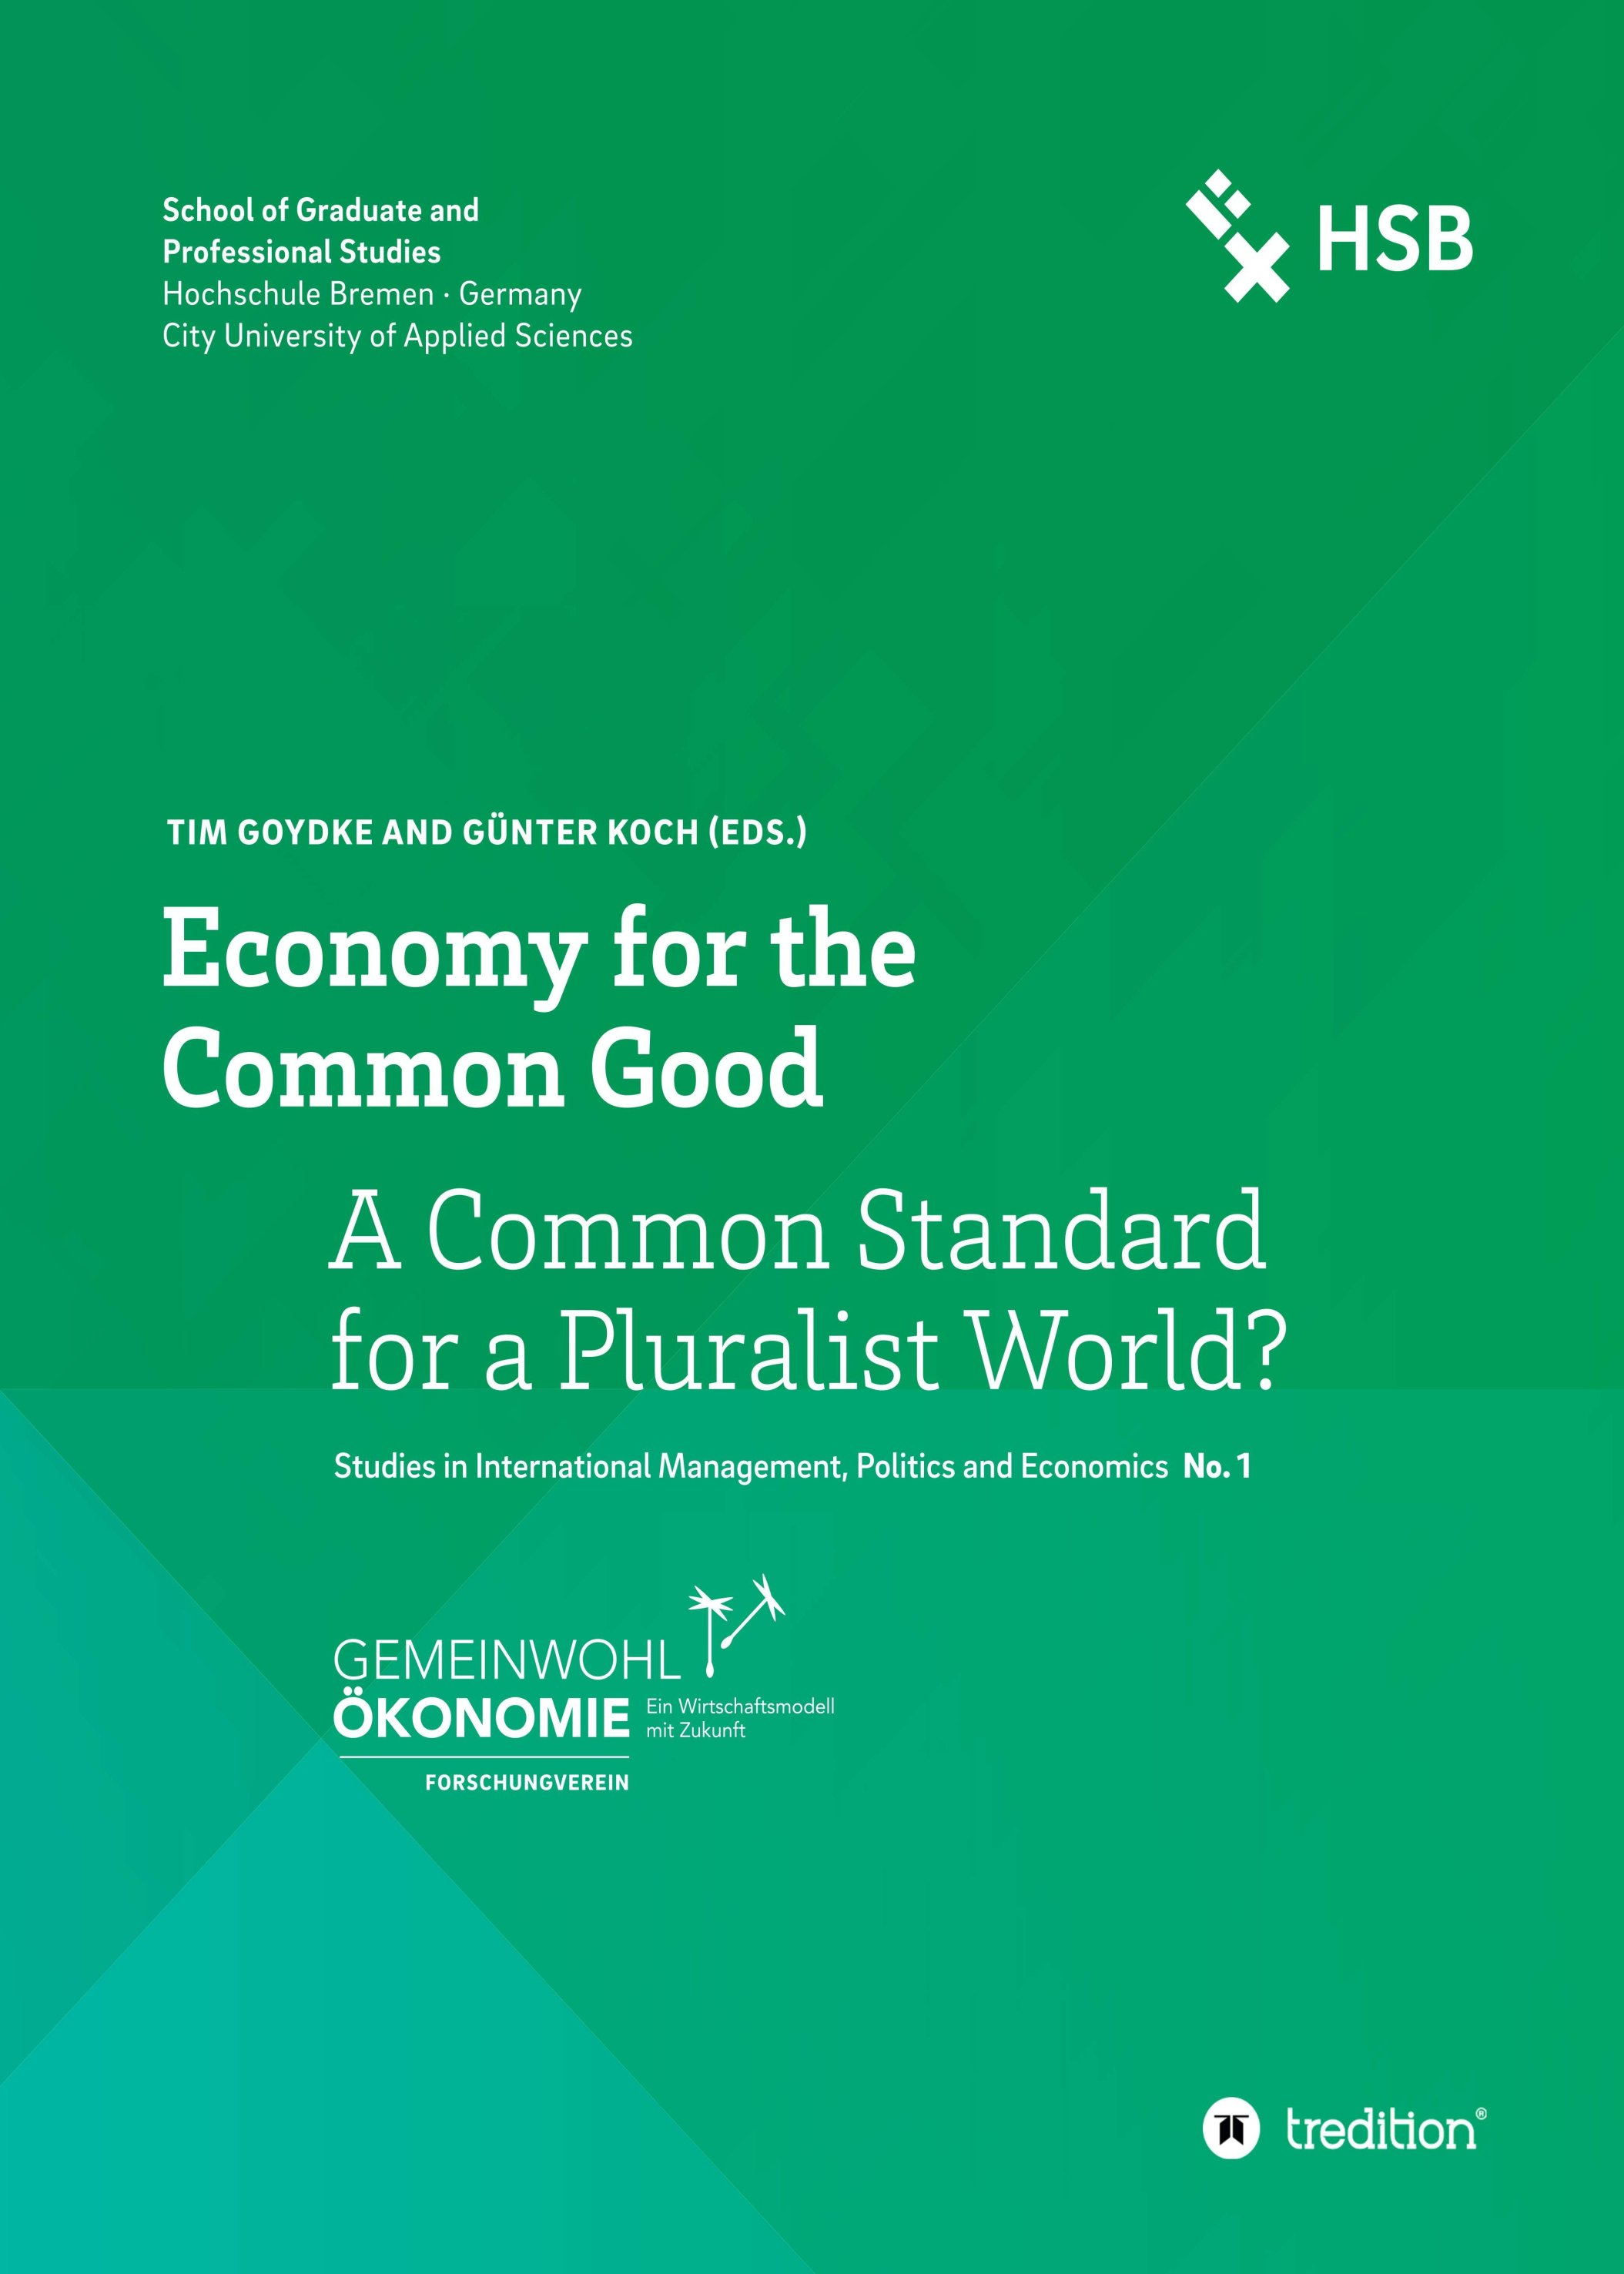 Economy for the Common Good - Insightful scholarly texts